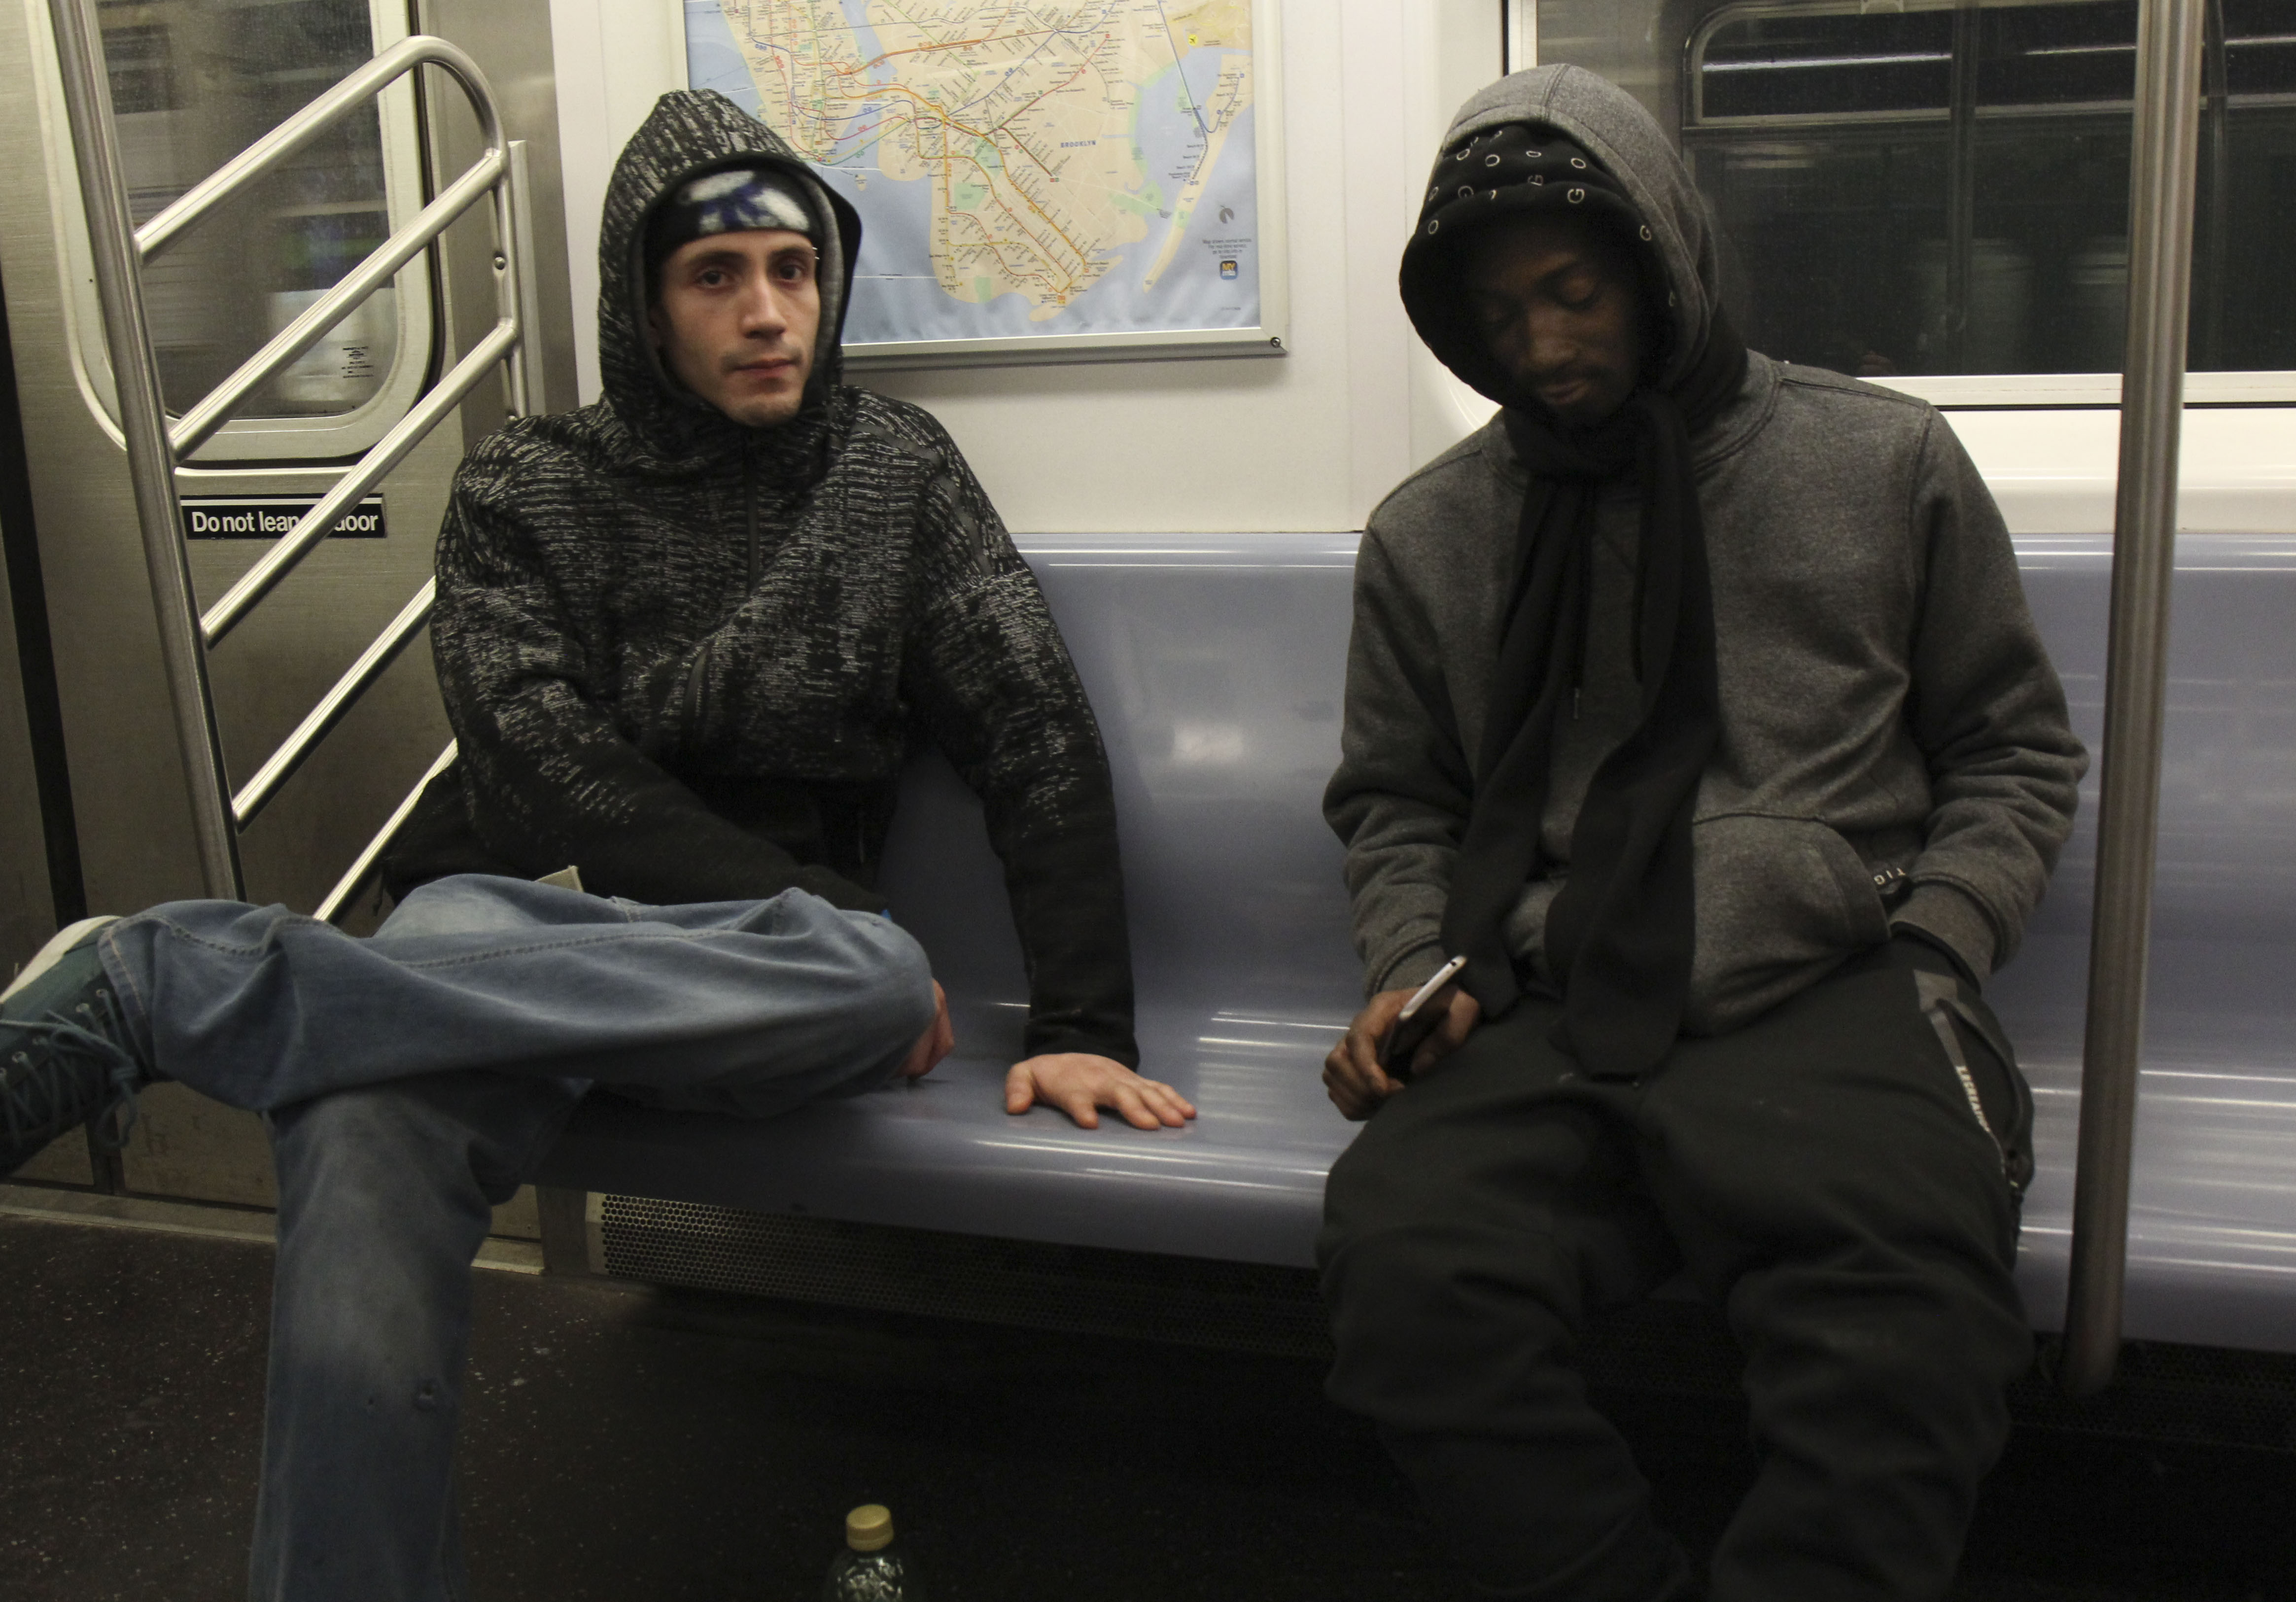 Kevin and a friend ride the train after smoking together.